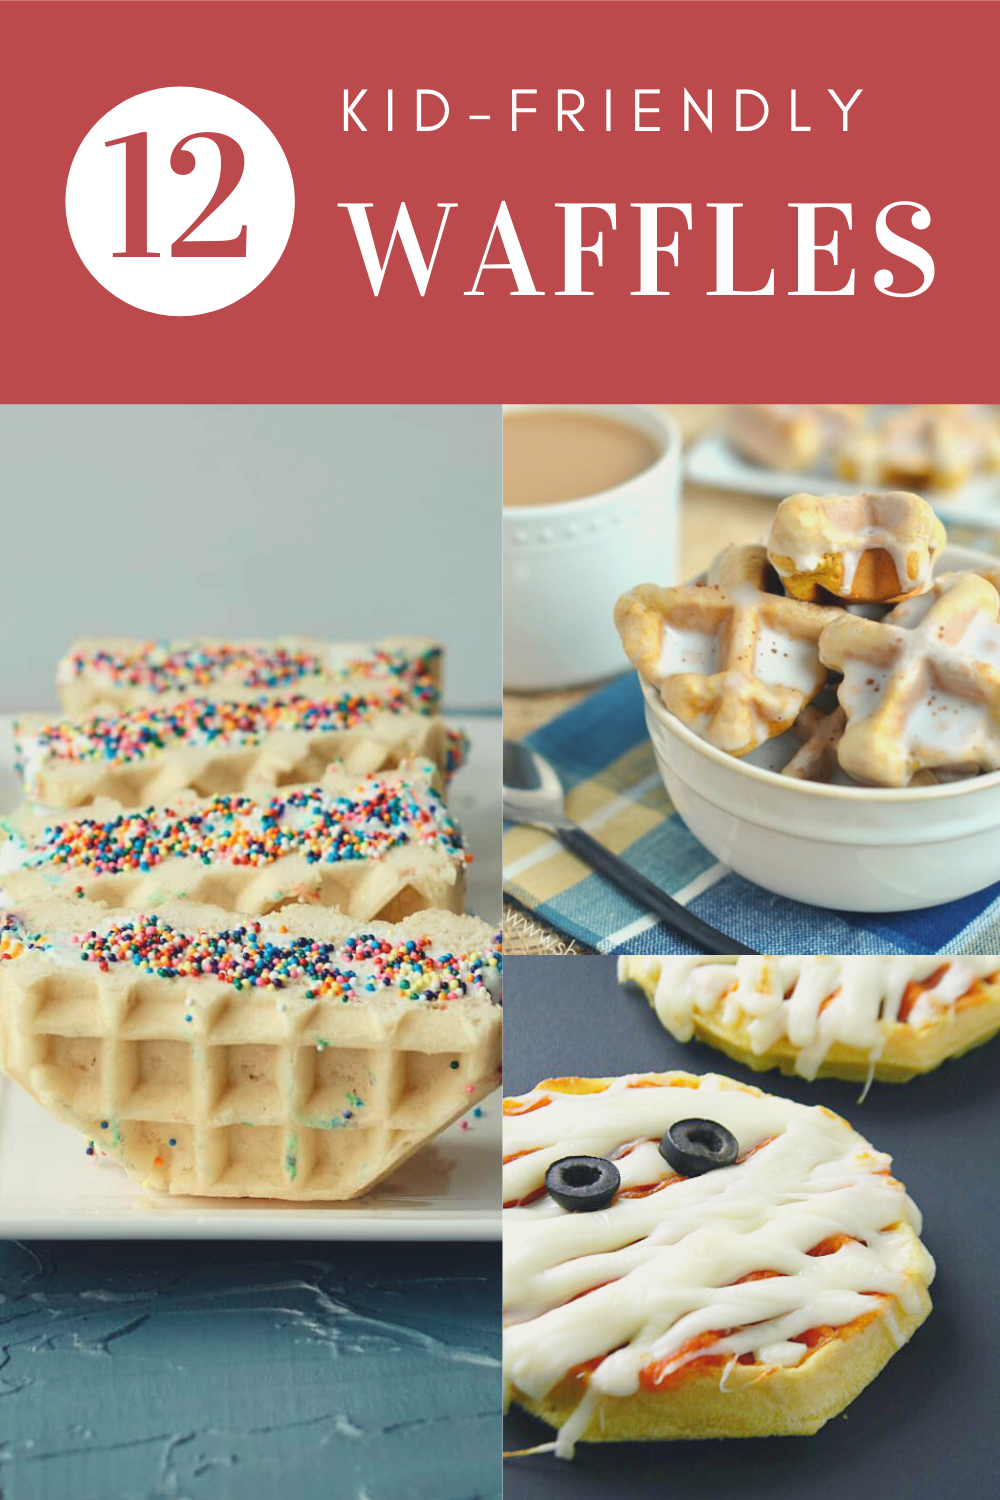 Whether you're serving breakfast, lunch or just an afternoon snack, we've got you covered with any of these easy Kid-Friendly Waffle recipes!